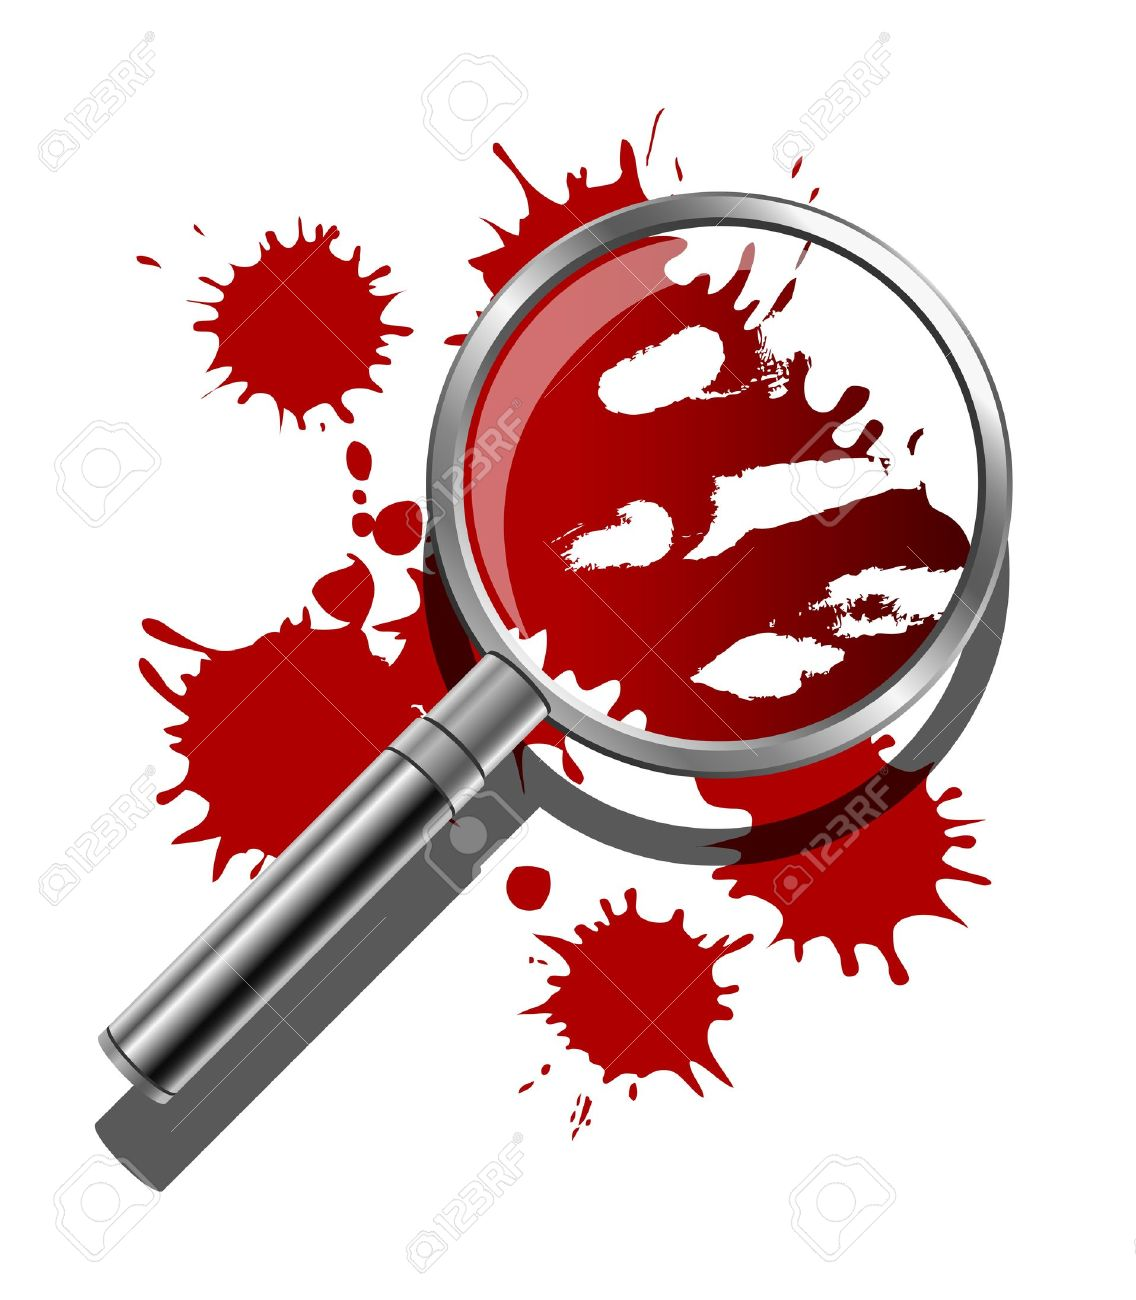 A magnifying glass being used to inspect the bloody evidence of a crime scene Stock Vector - 18263604